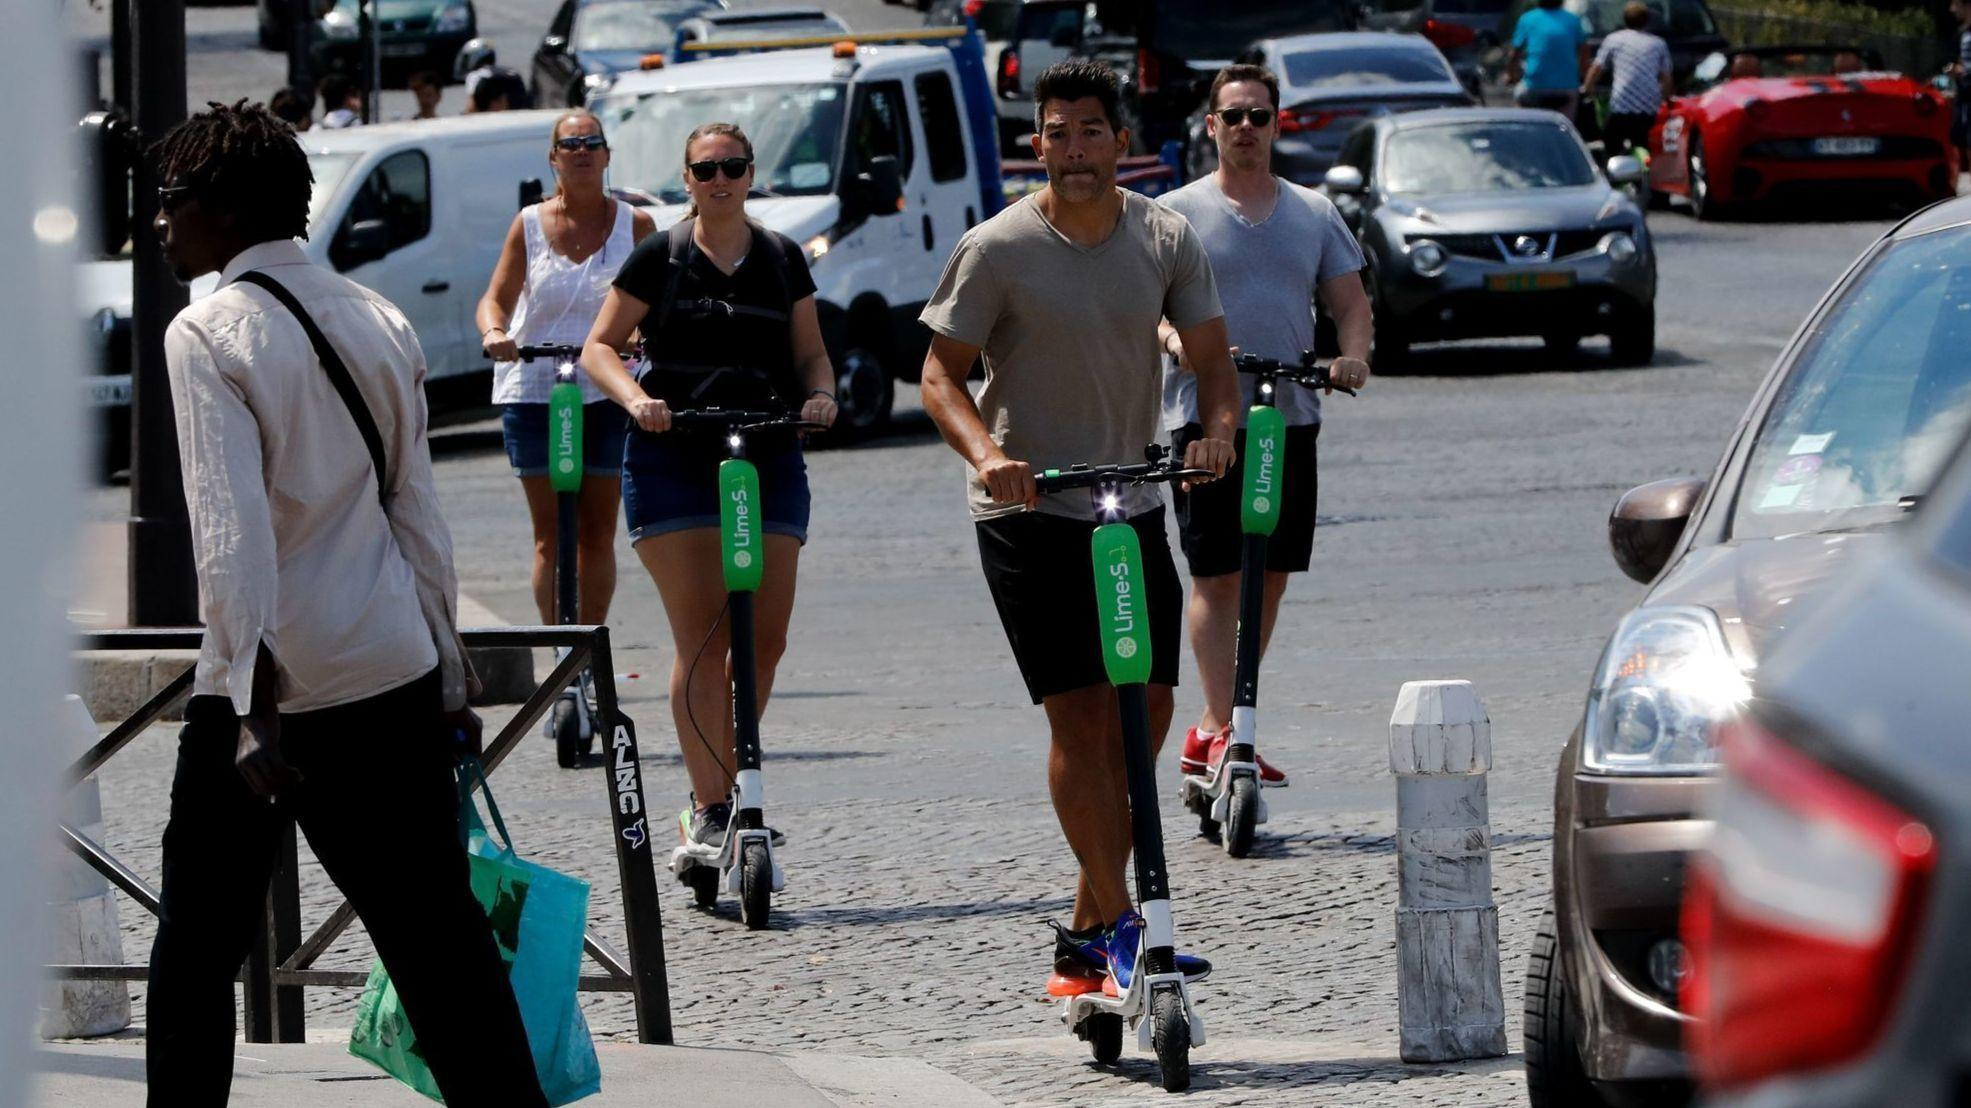 Sheffield Music Festival Garden Walk: Scooter Sharing Gets A Test Drive In Chicago